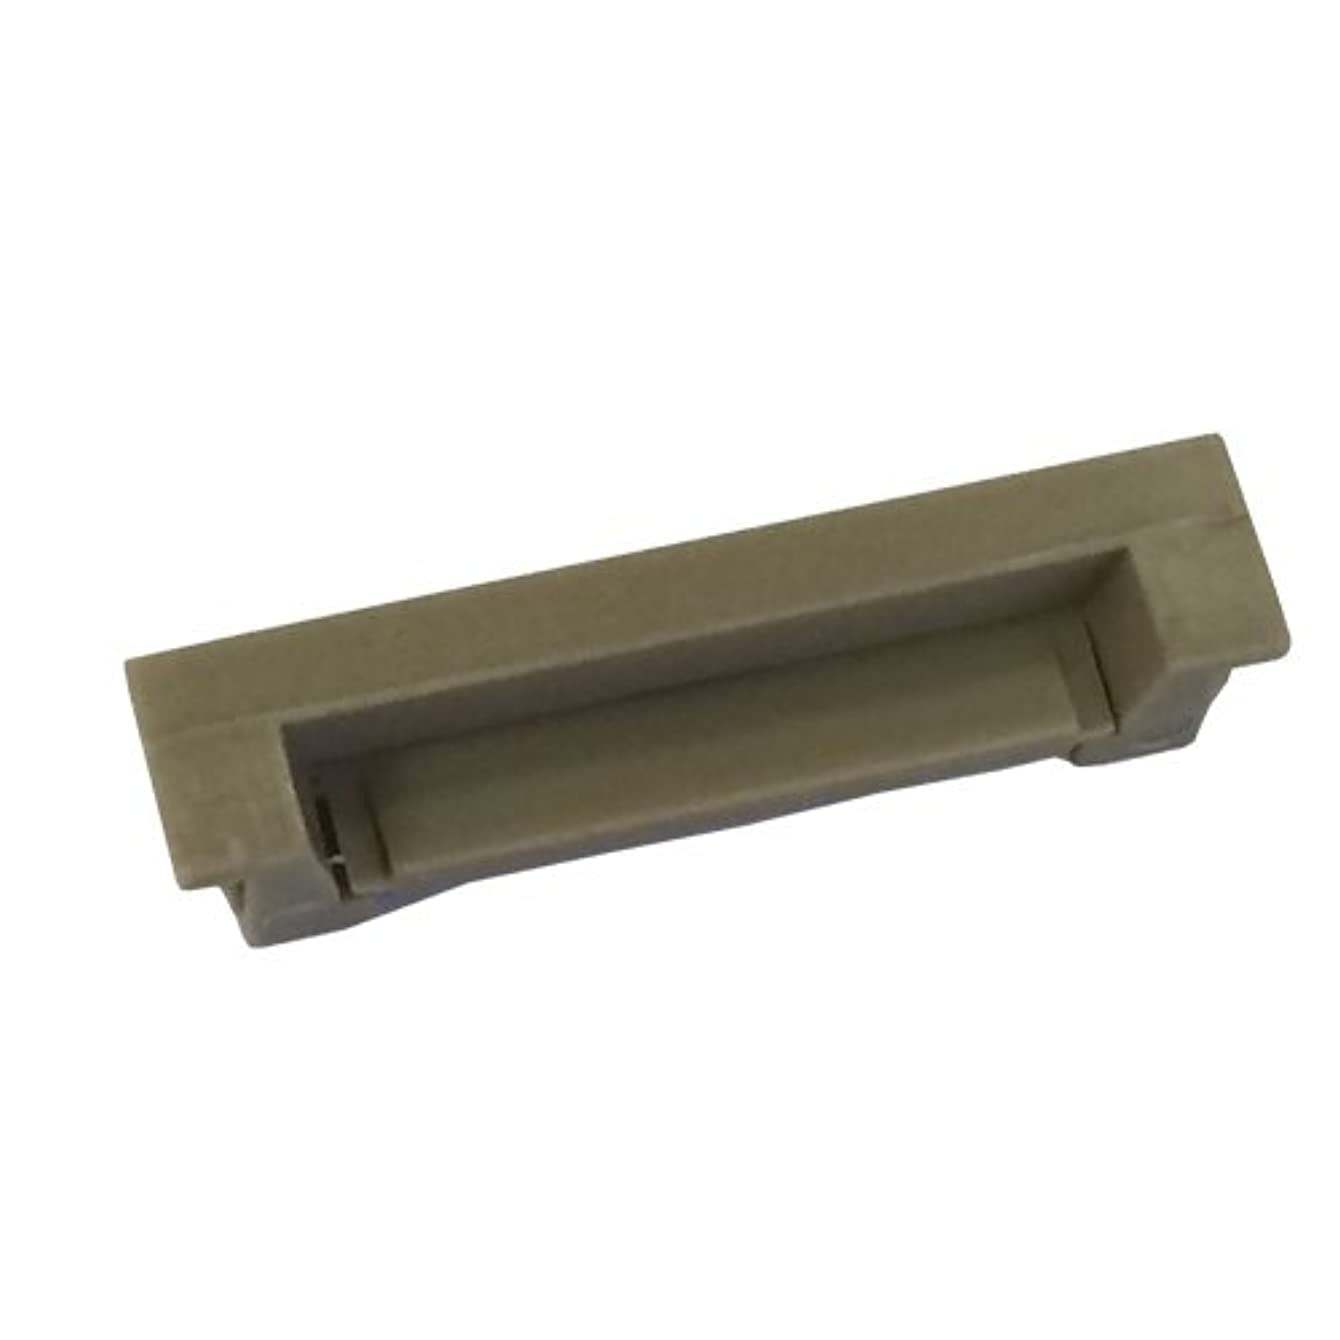 Set of 10 pcs Window Sash Weep Cover 1222CLAY